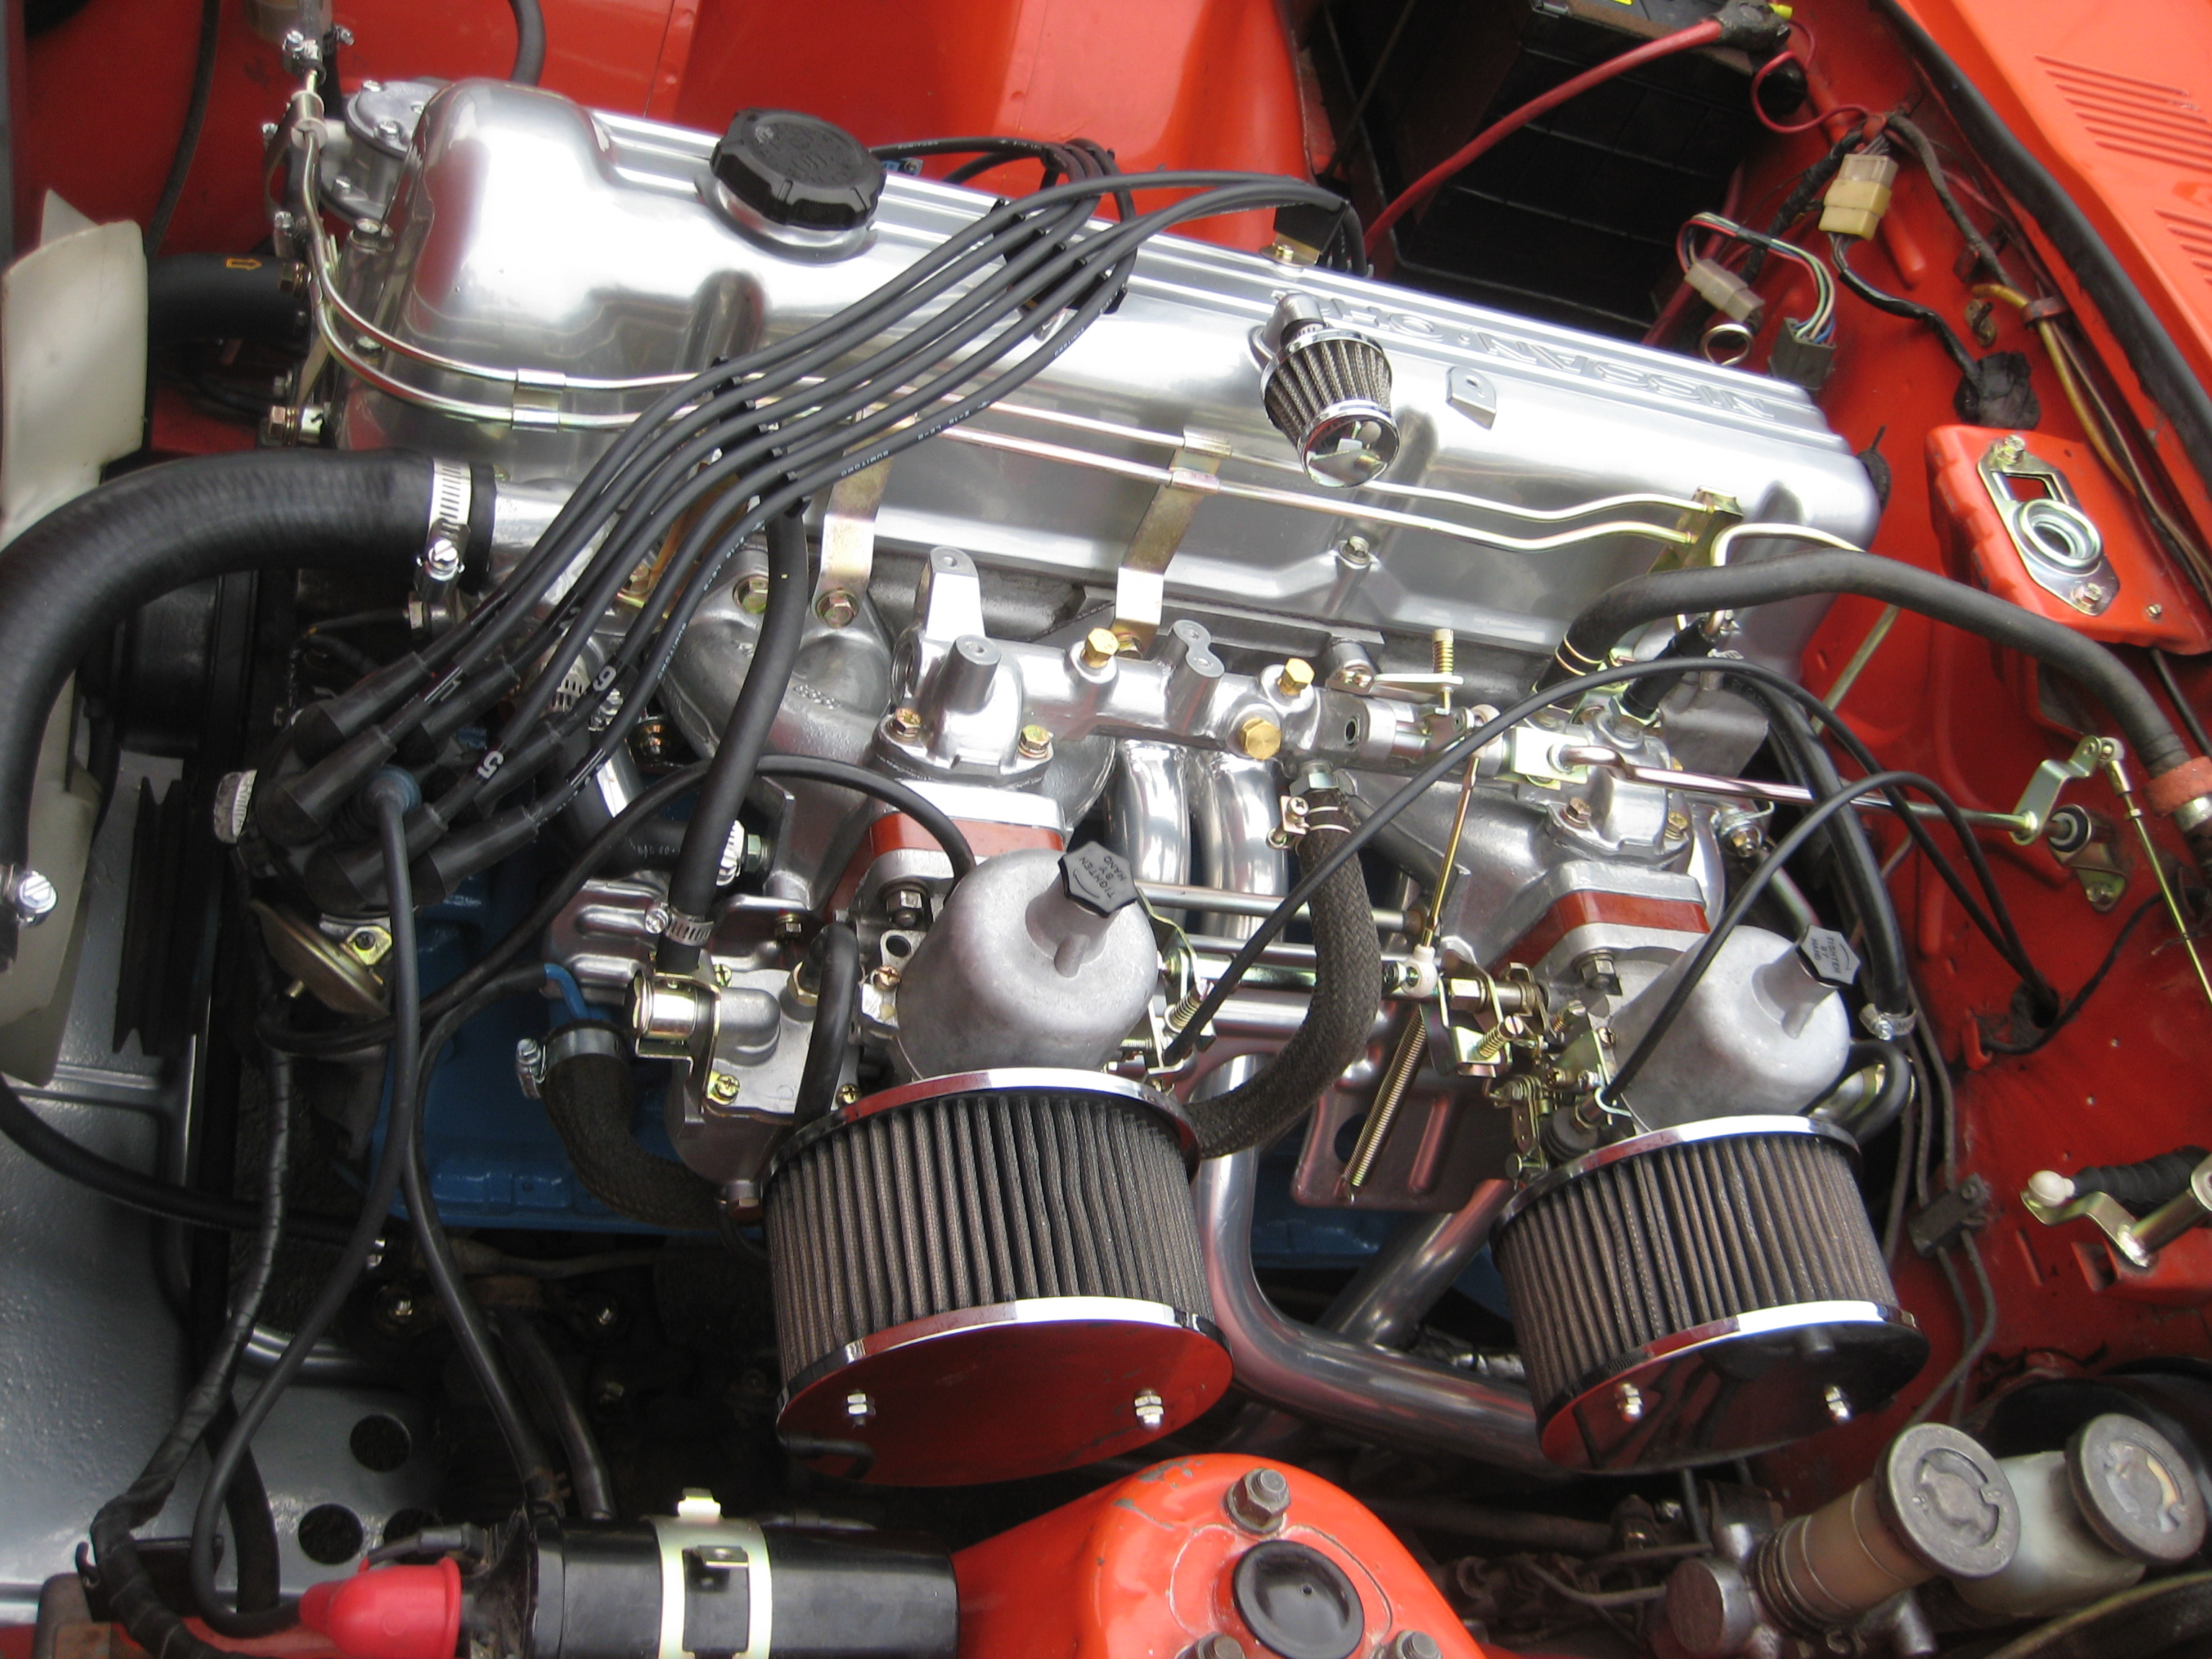 [DIAGRAM_38EU]  240z Engine Bay Diagram. download 240z engine bay diagram. post your engine  bay engine detail pics datsun z cars. z car blog post topic surprise it s  your datsun ken. collections zeddsaver. | 240z Engine Bay Diagram |  | 2002-acura-tl-radio.info